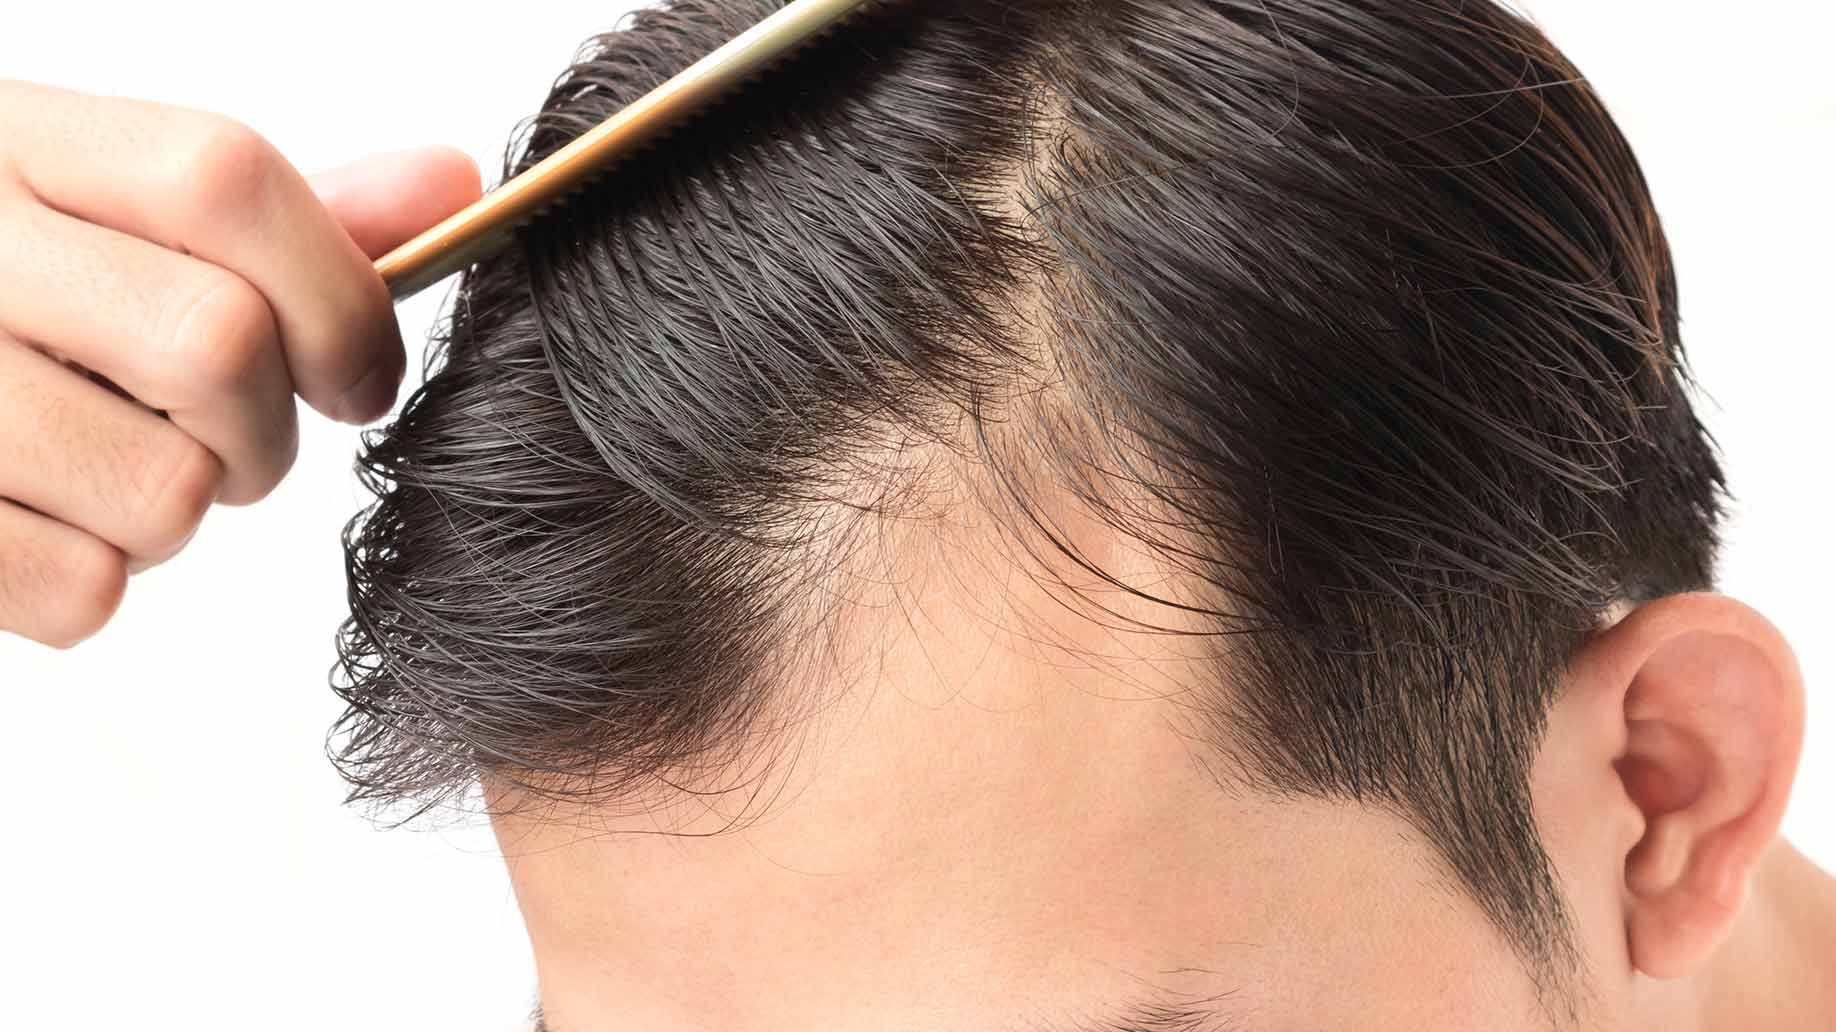 Causes Of Men's Hair Loss